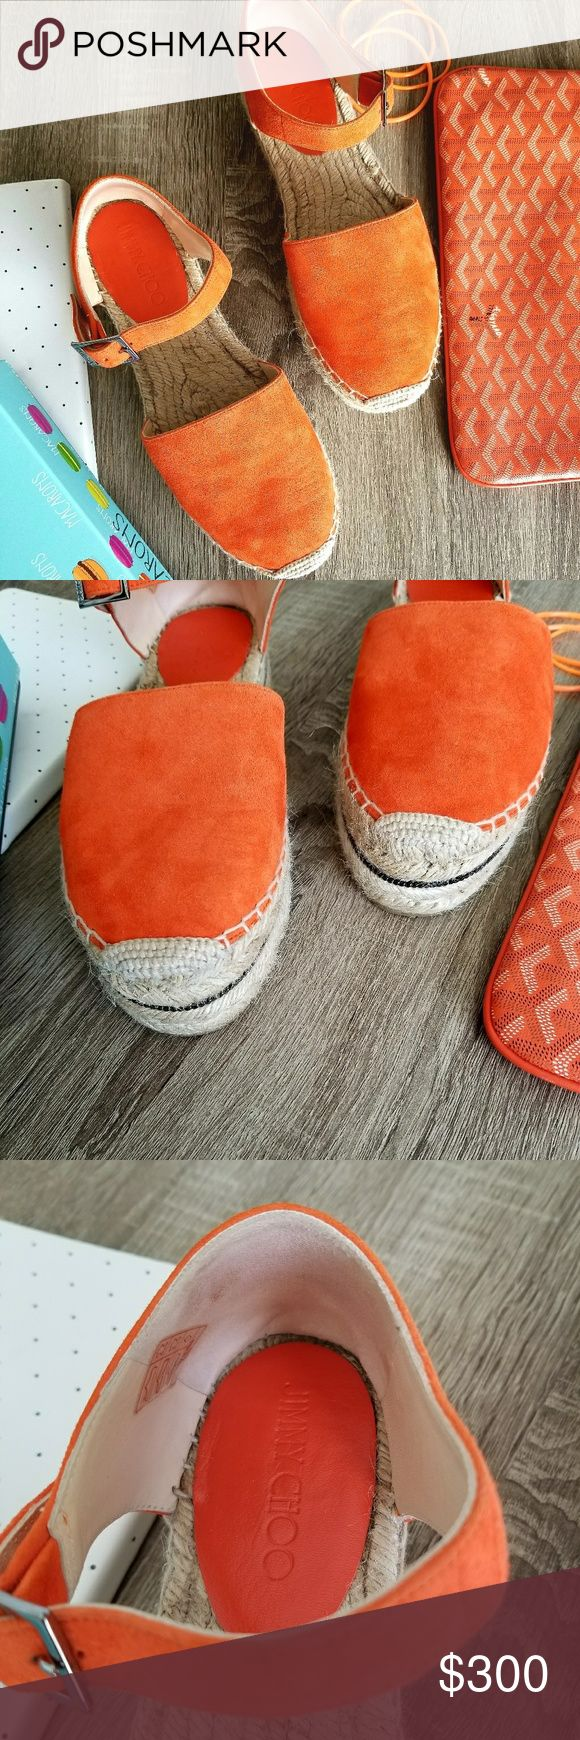 Jimmy Choo orange espadrilles Authentic Jimmy Choo orange espadrille shoes in excellent condition brand new.  It was a gift but I never wore them (too big for me) Comes with the box and a dust bag. Size 39 genuine suede Jimmy Choo Shoes Espadrilles